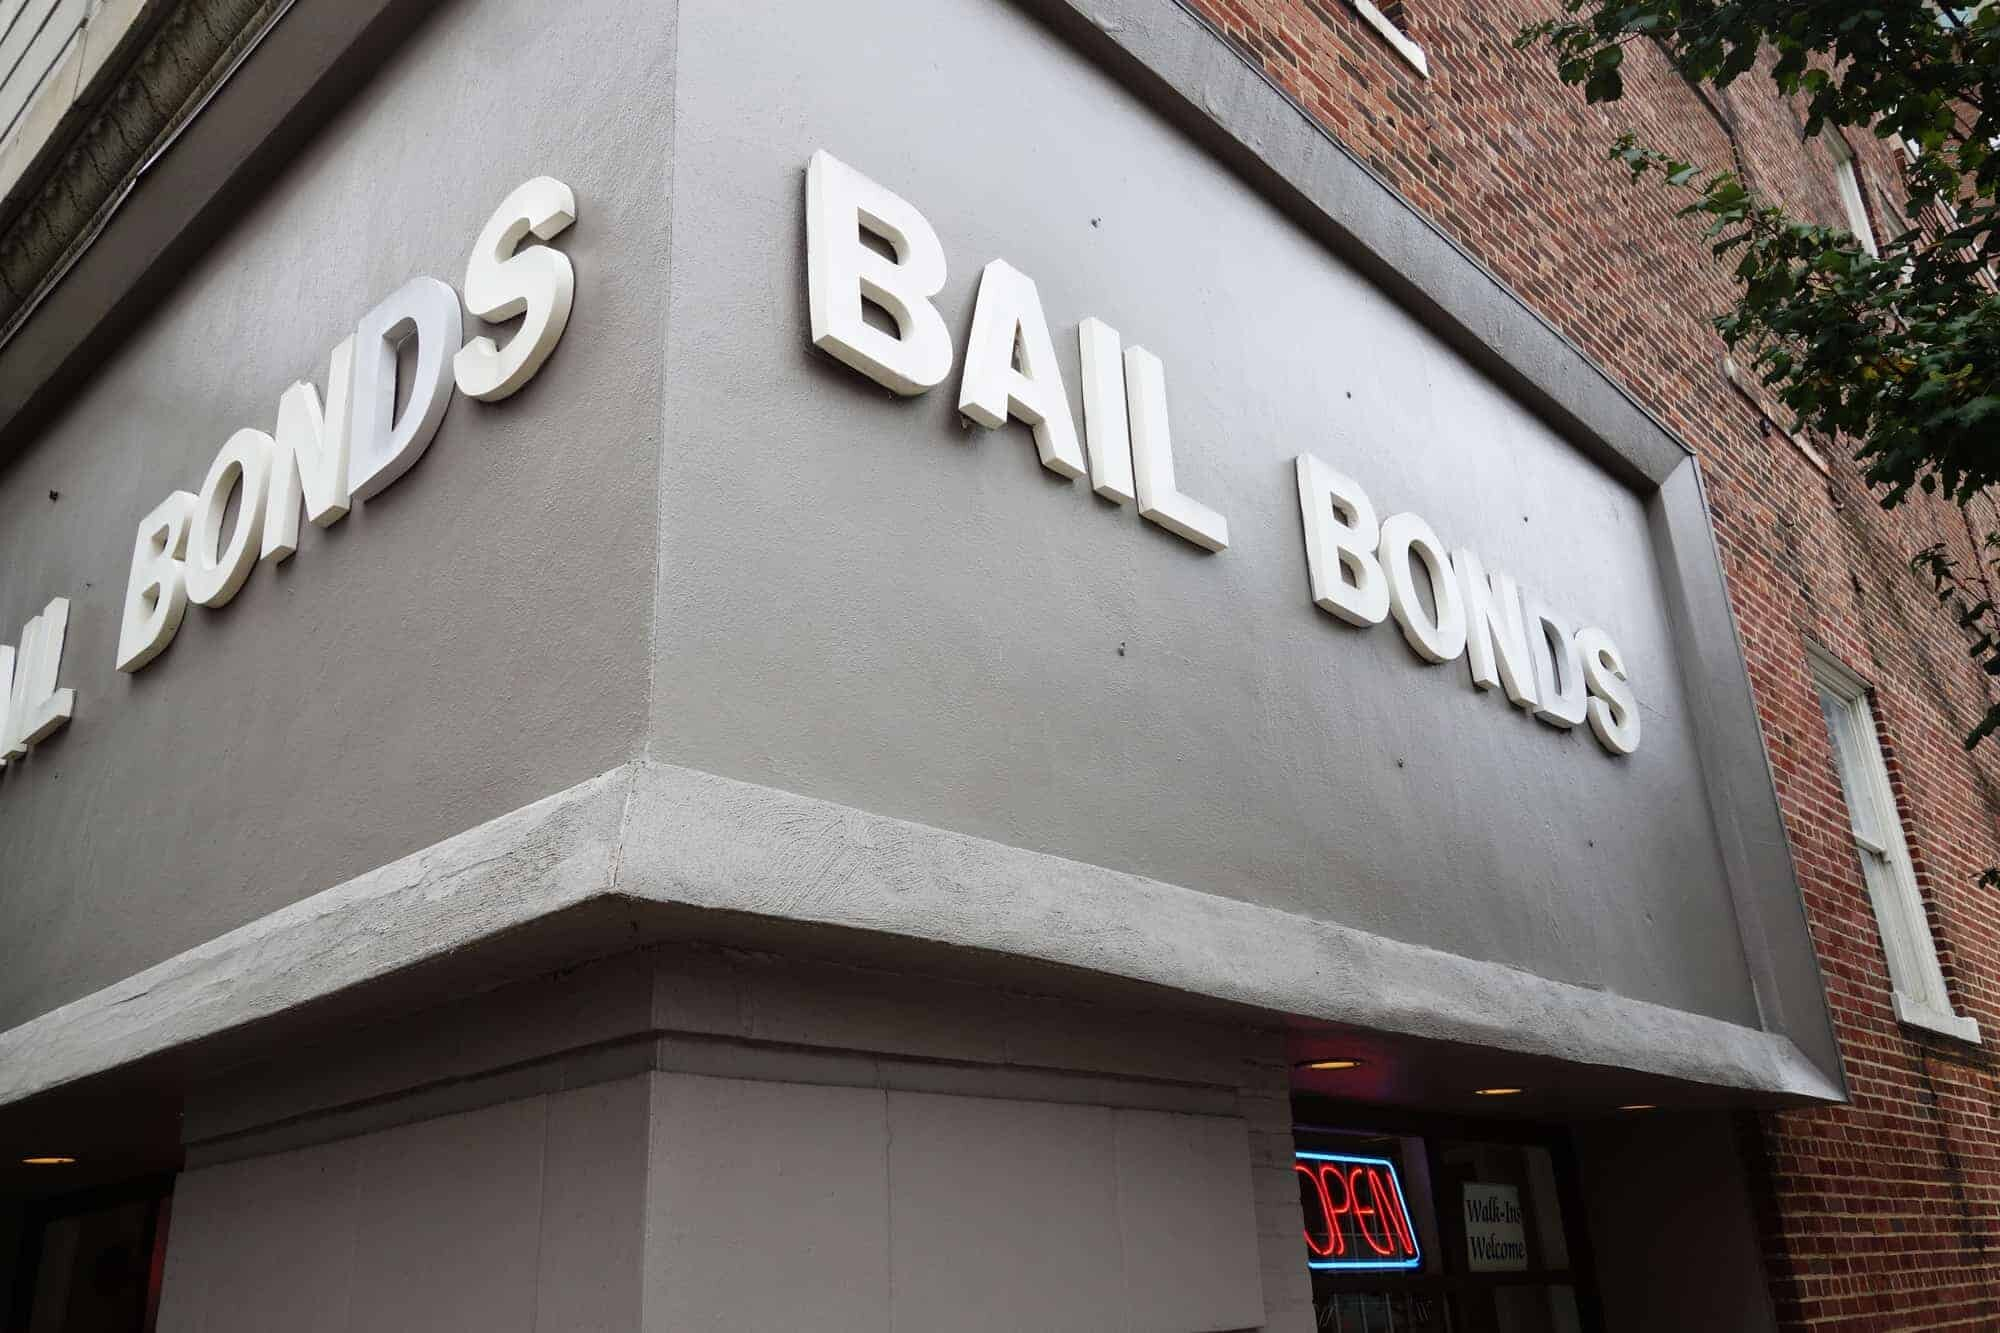 Mike G Law Bail Bonds in Florida